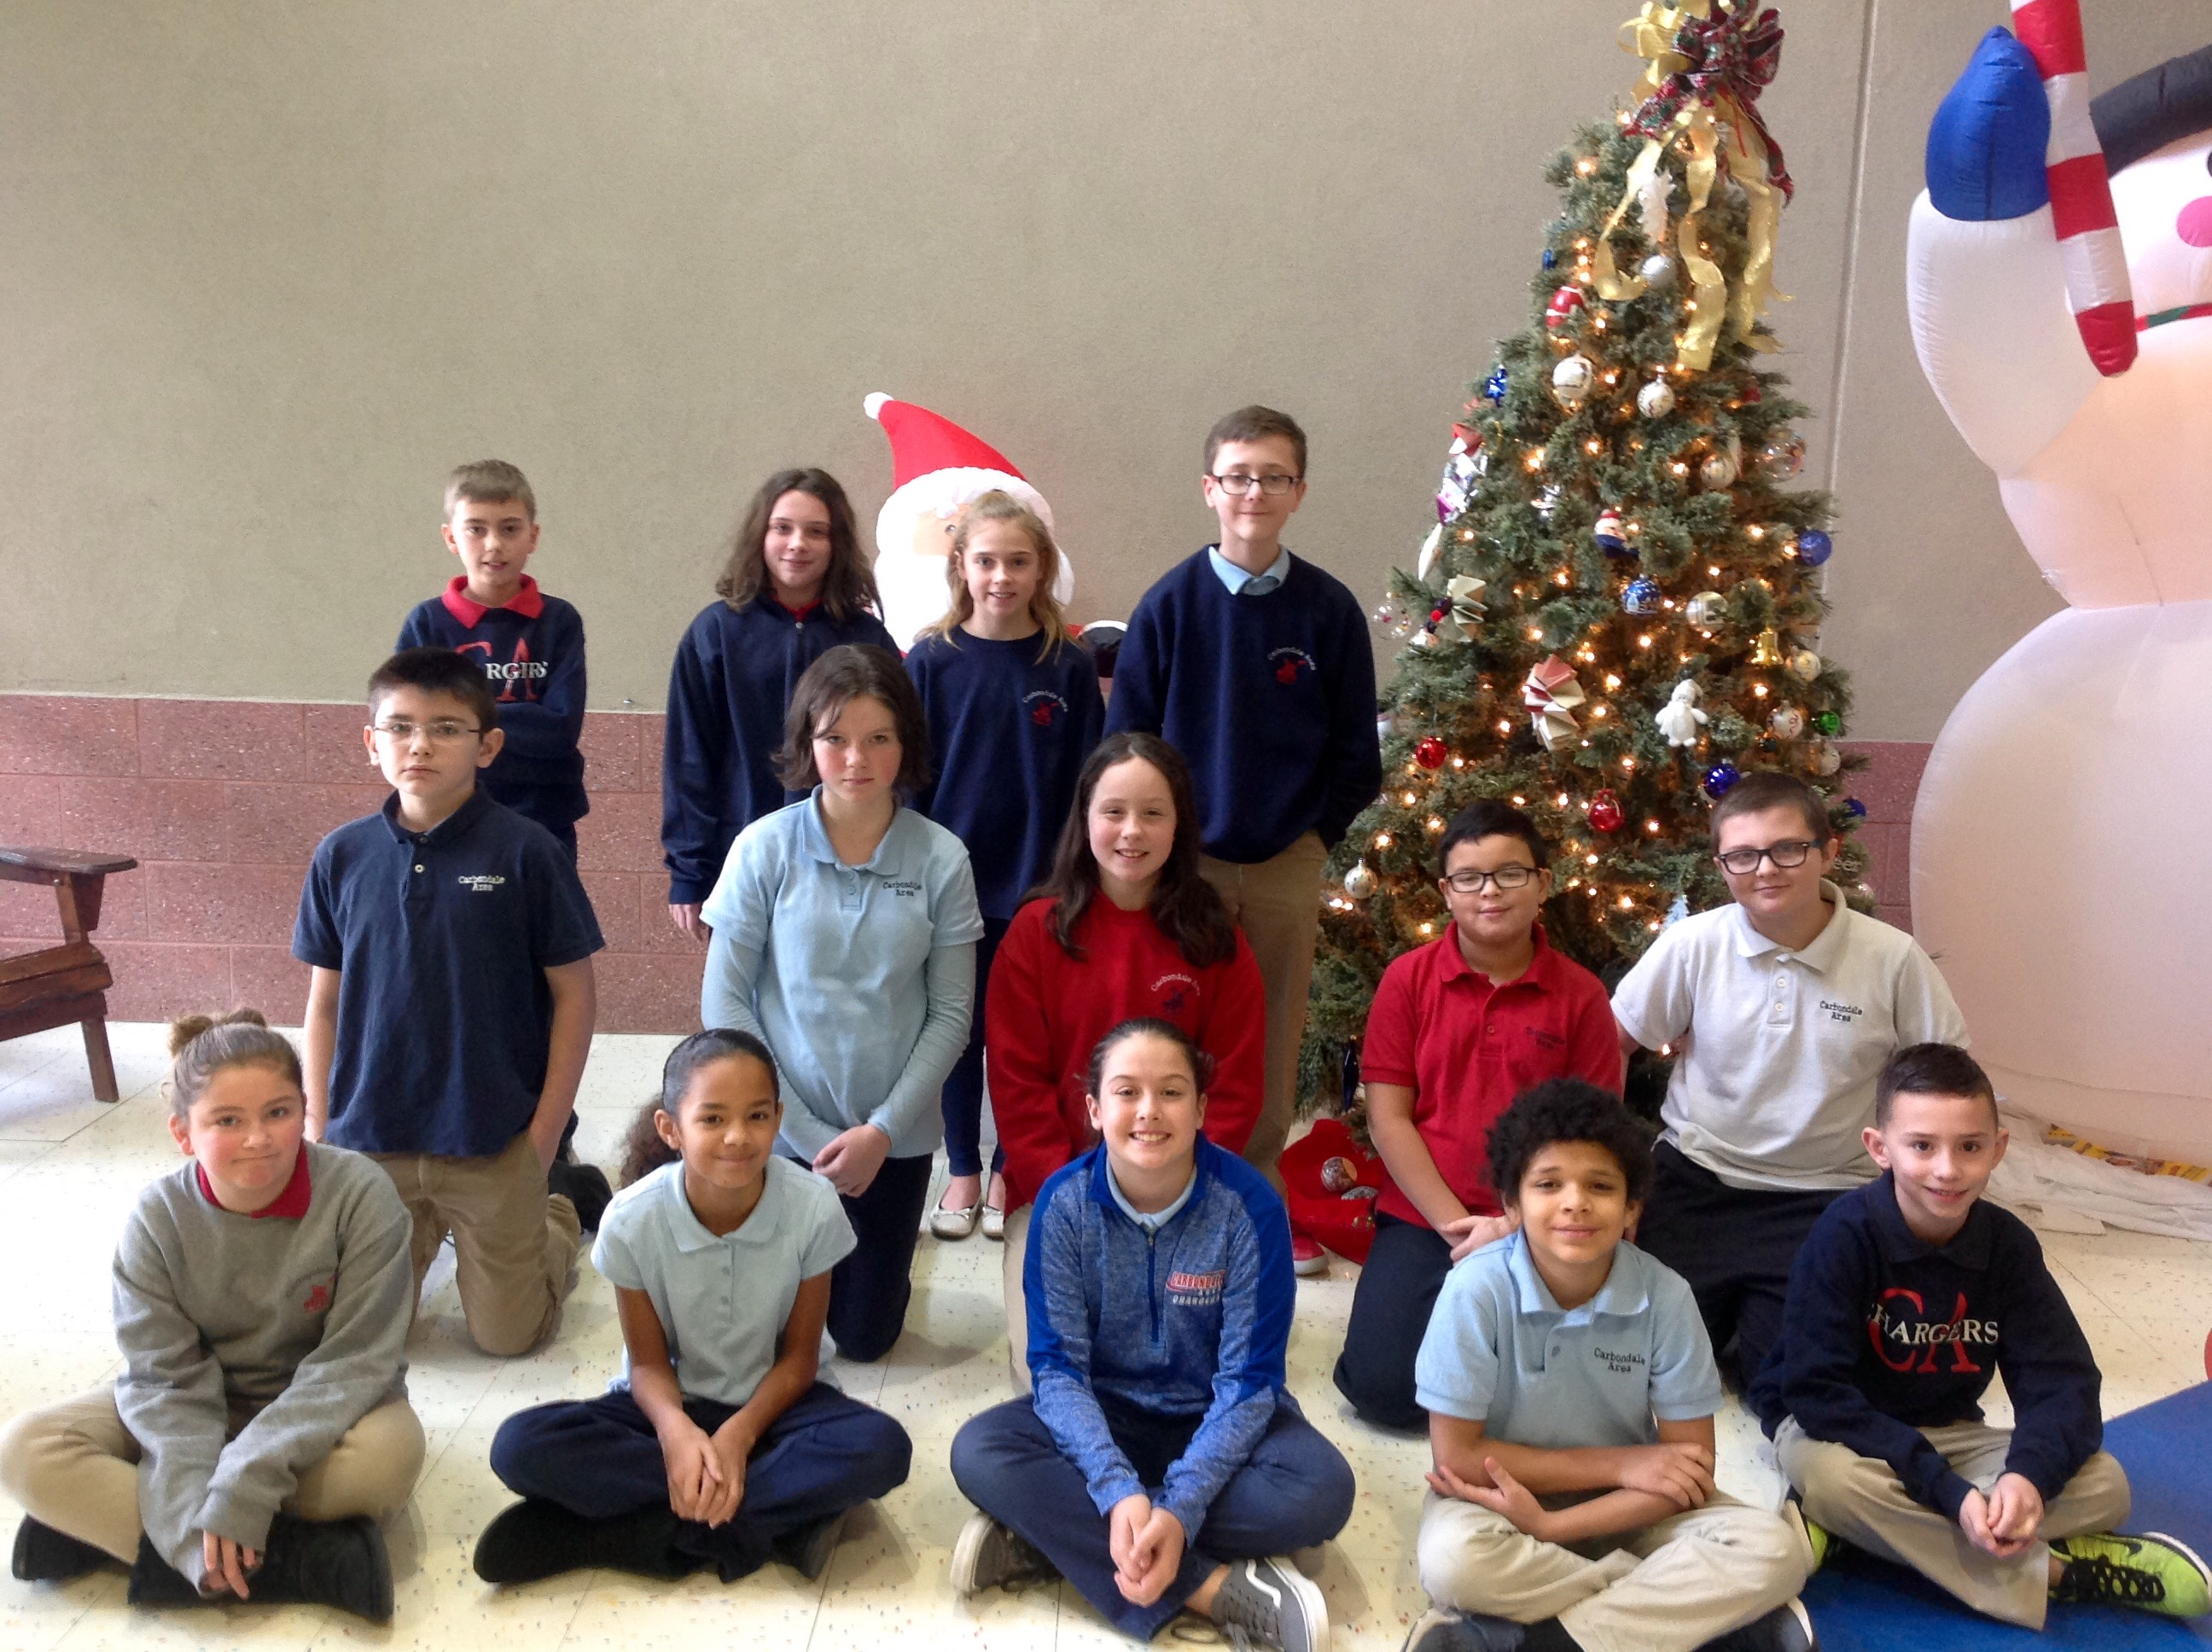 4th-6th Grade Citizens of the Month for November